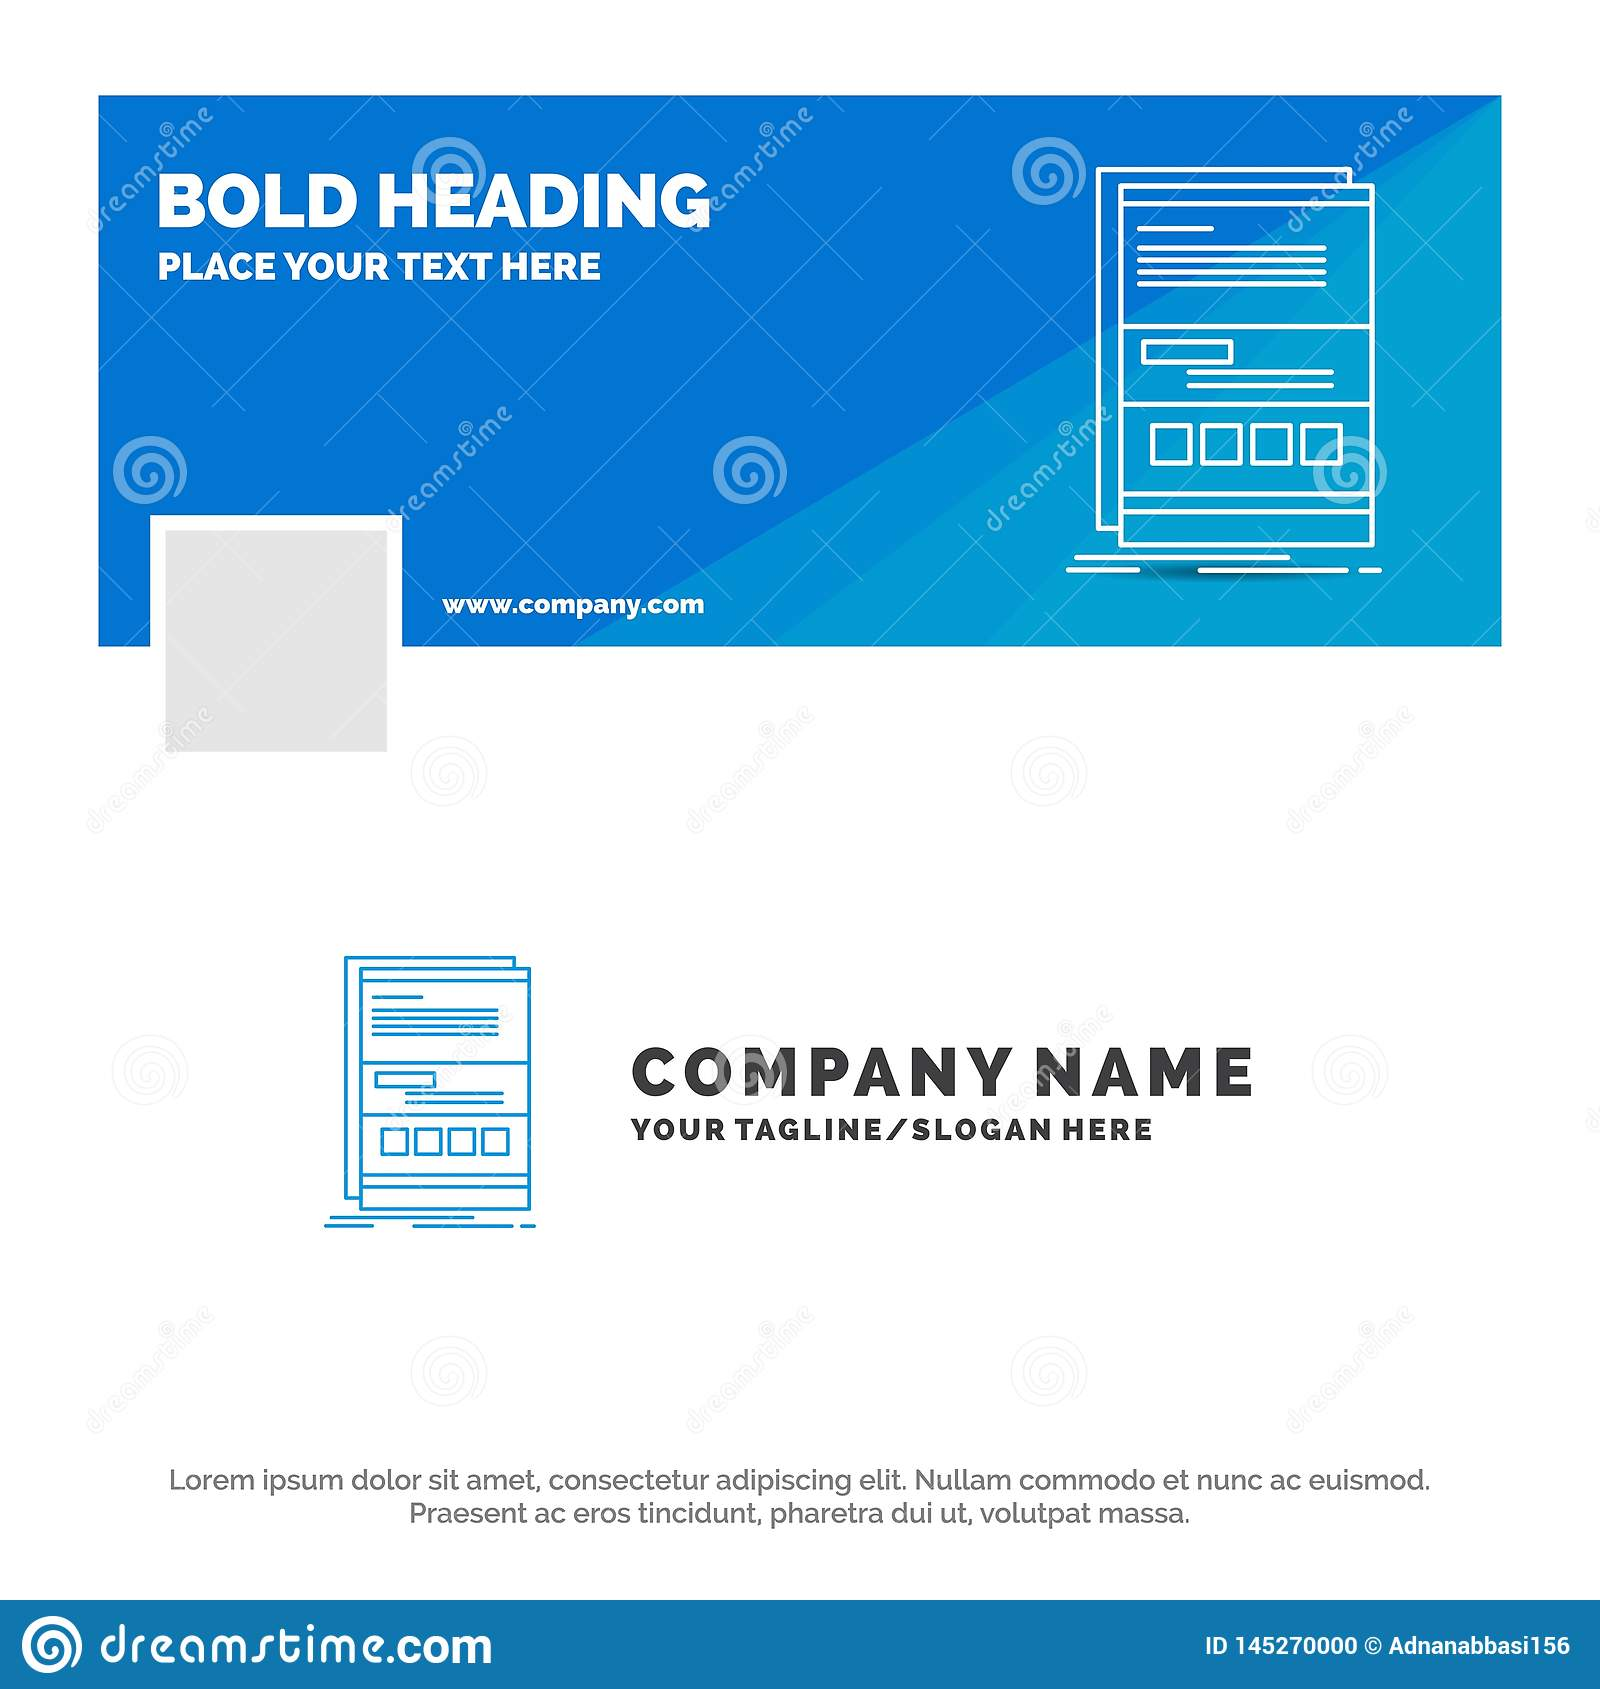 Blue Business Logo Template For Browser, Dynamic, Internet